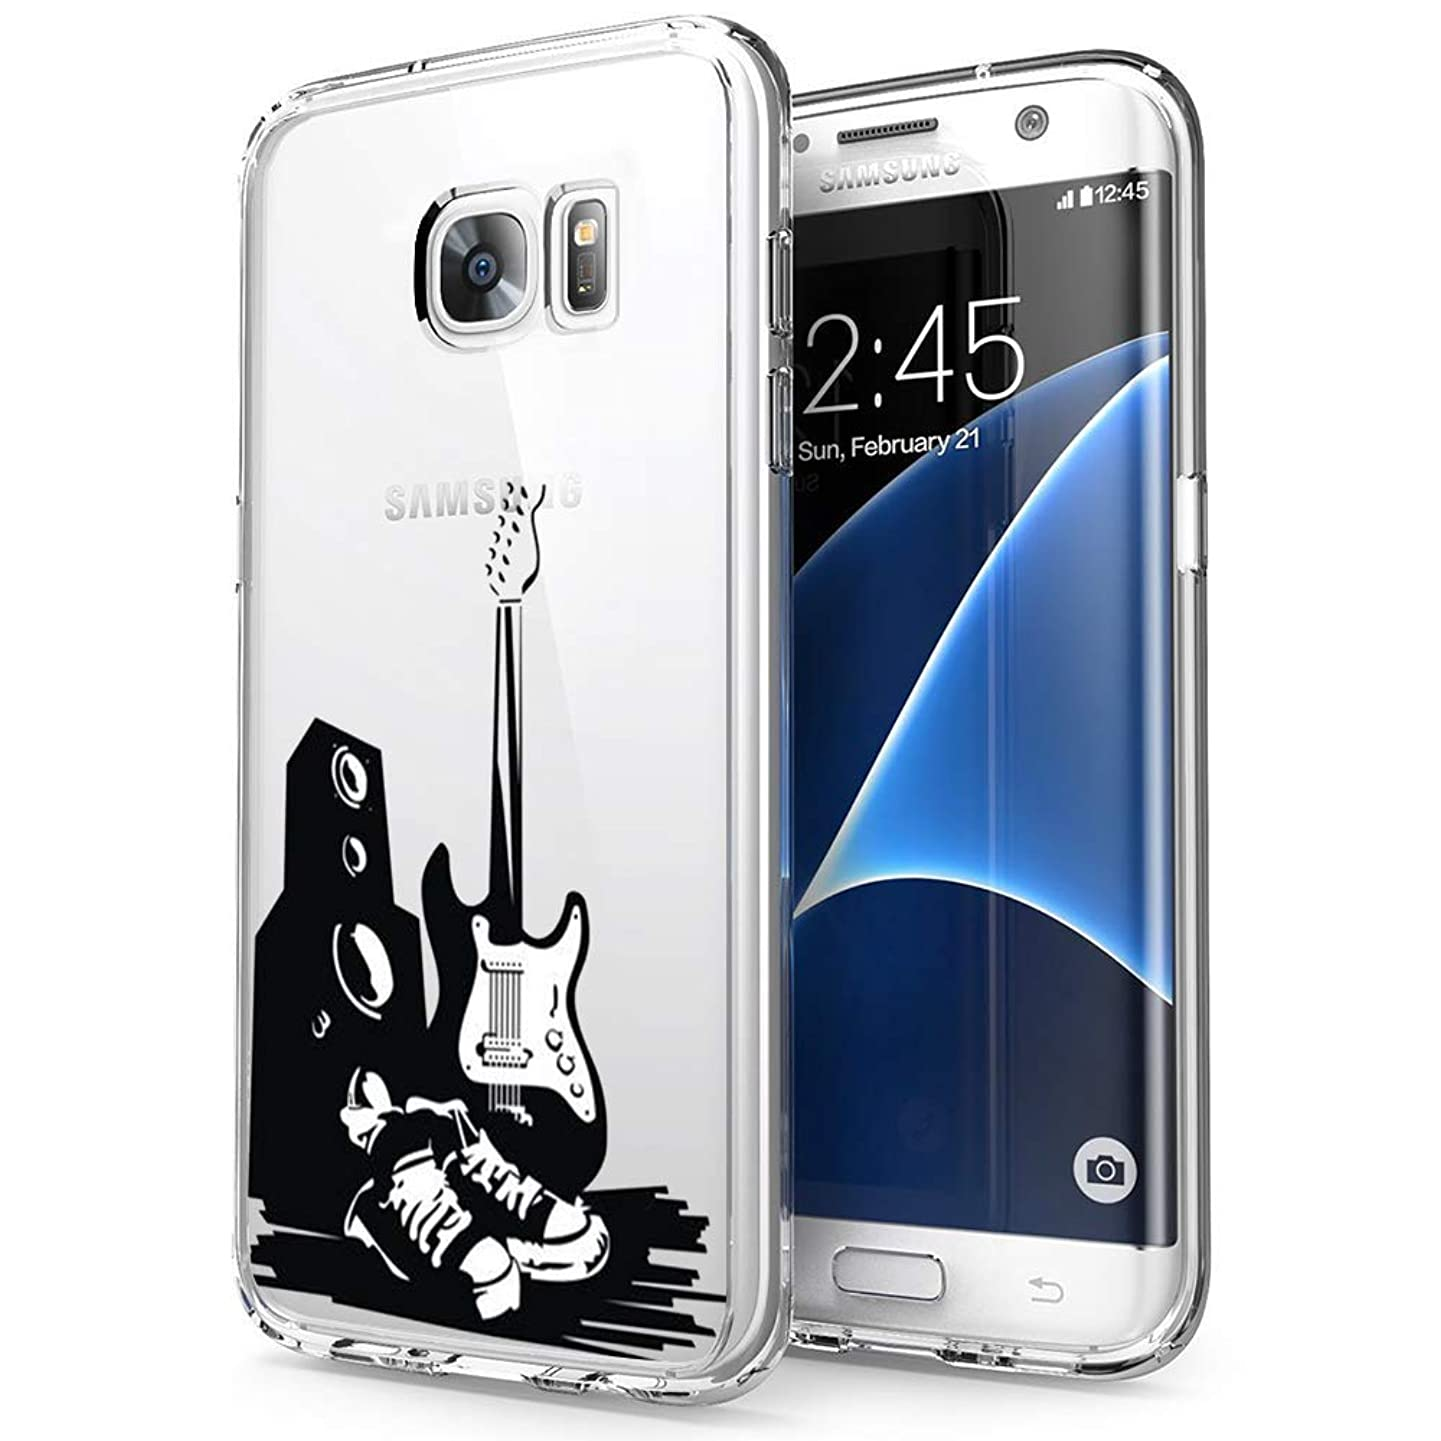 ChyFS Phone Case for Samsung Galaxy S7 Edge Guitar and Speakers Clear Case Crystal Protective Case for Samsung Galaxy S7 Edge.